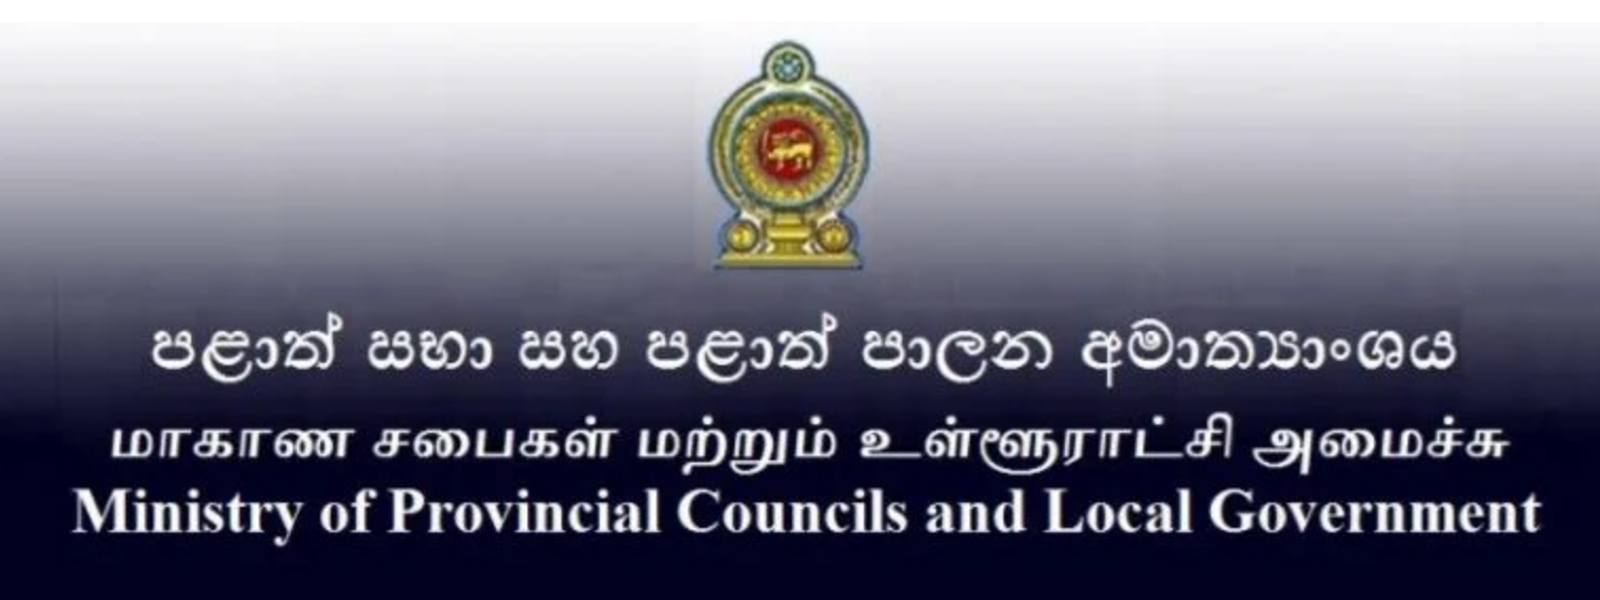 Provincial administrative institutions facing a severe financial crisis due to COVID-19